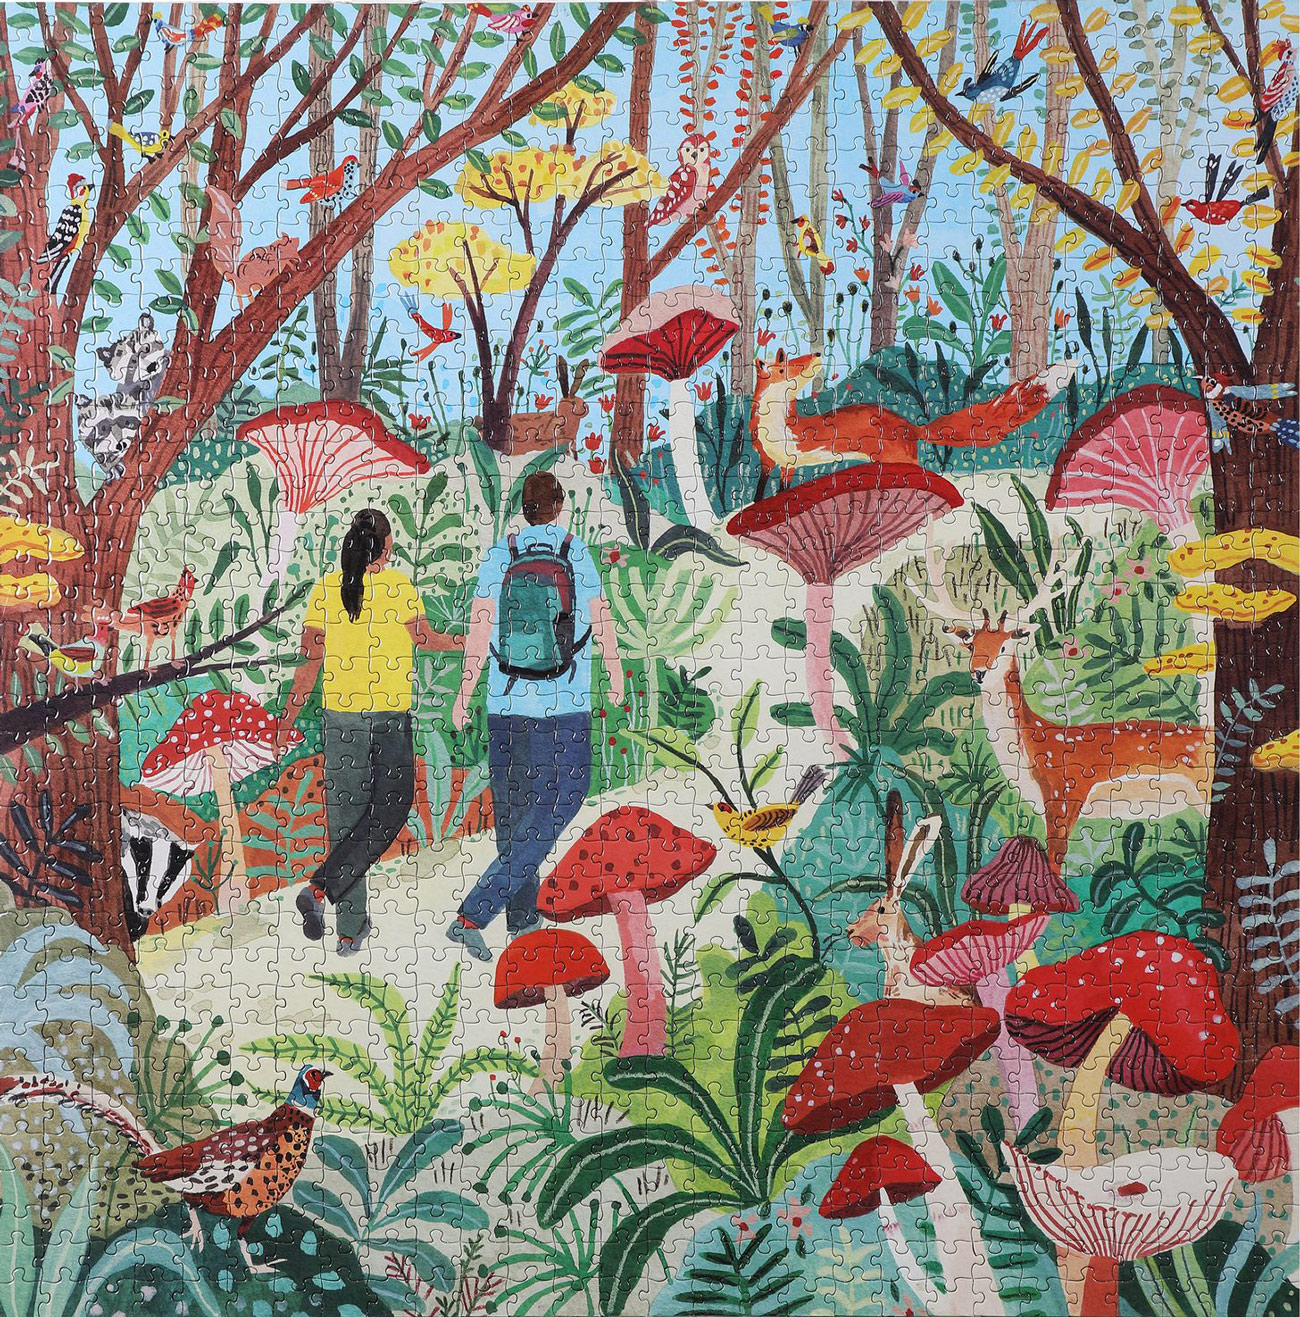 Hike in the Woods Forest Jigsaw Puzzle